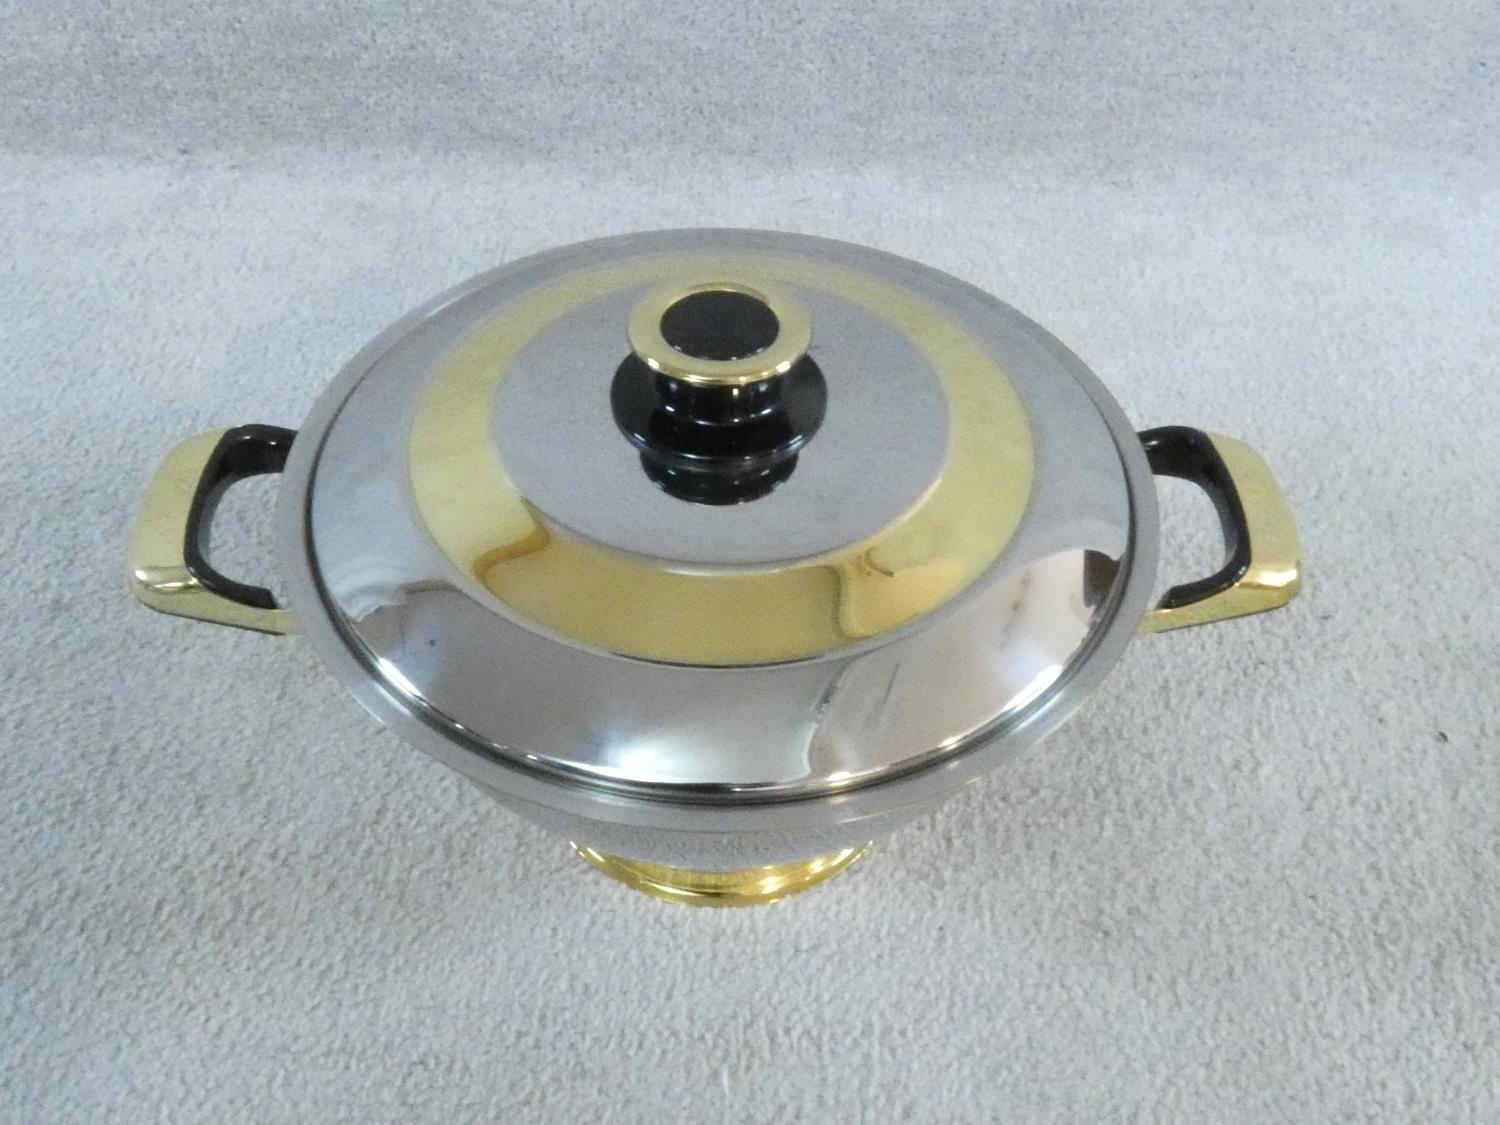 A set of boxed stainless steel as new Cameo Royale pans and cookware with 24k gold plated - Image 9 of 22